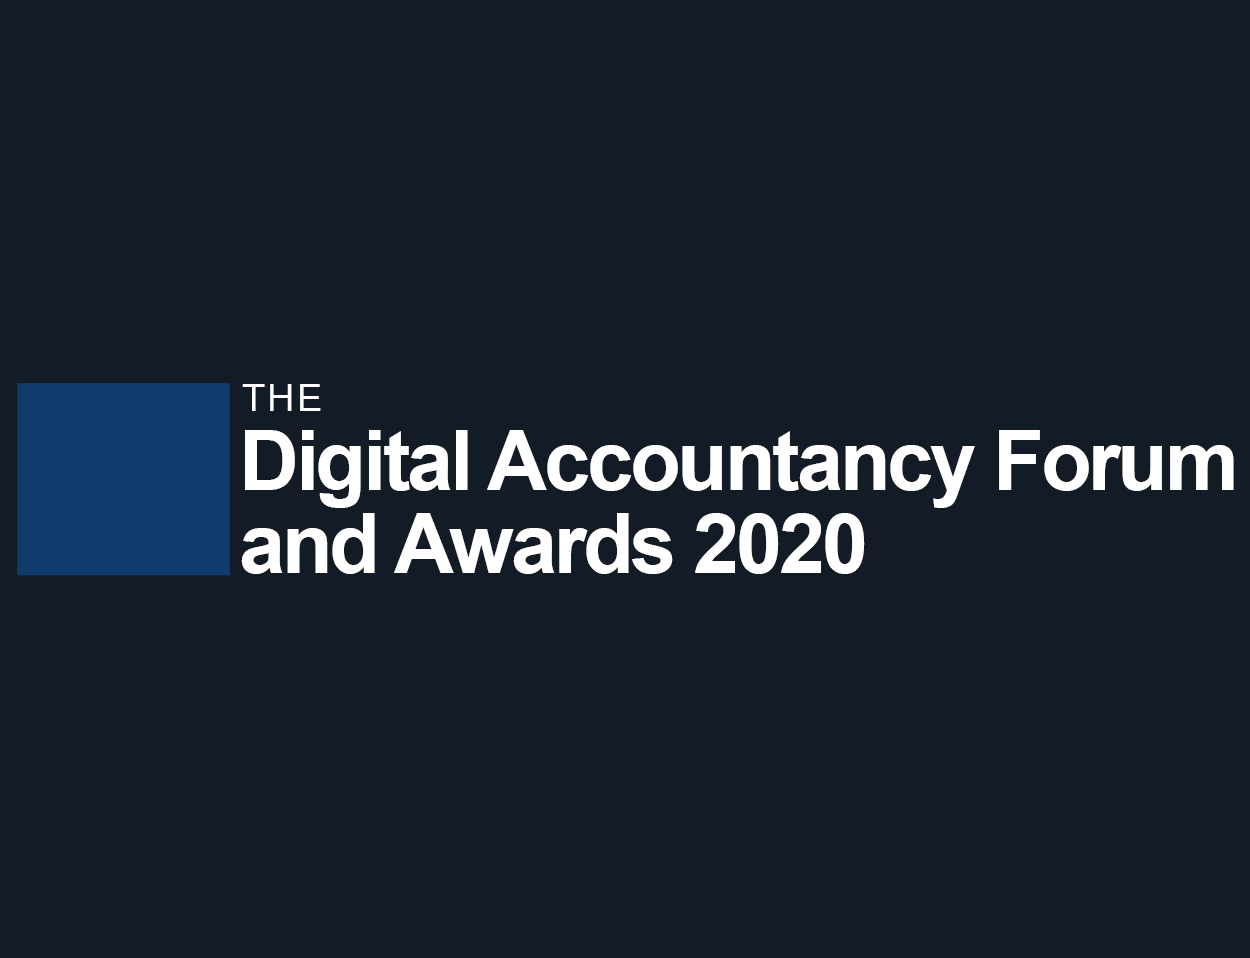 The 9th Digital Accountancy Forum and Awards 2020